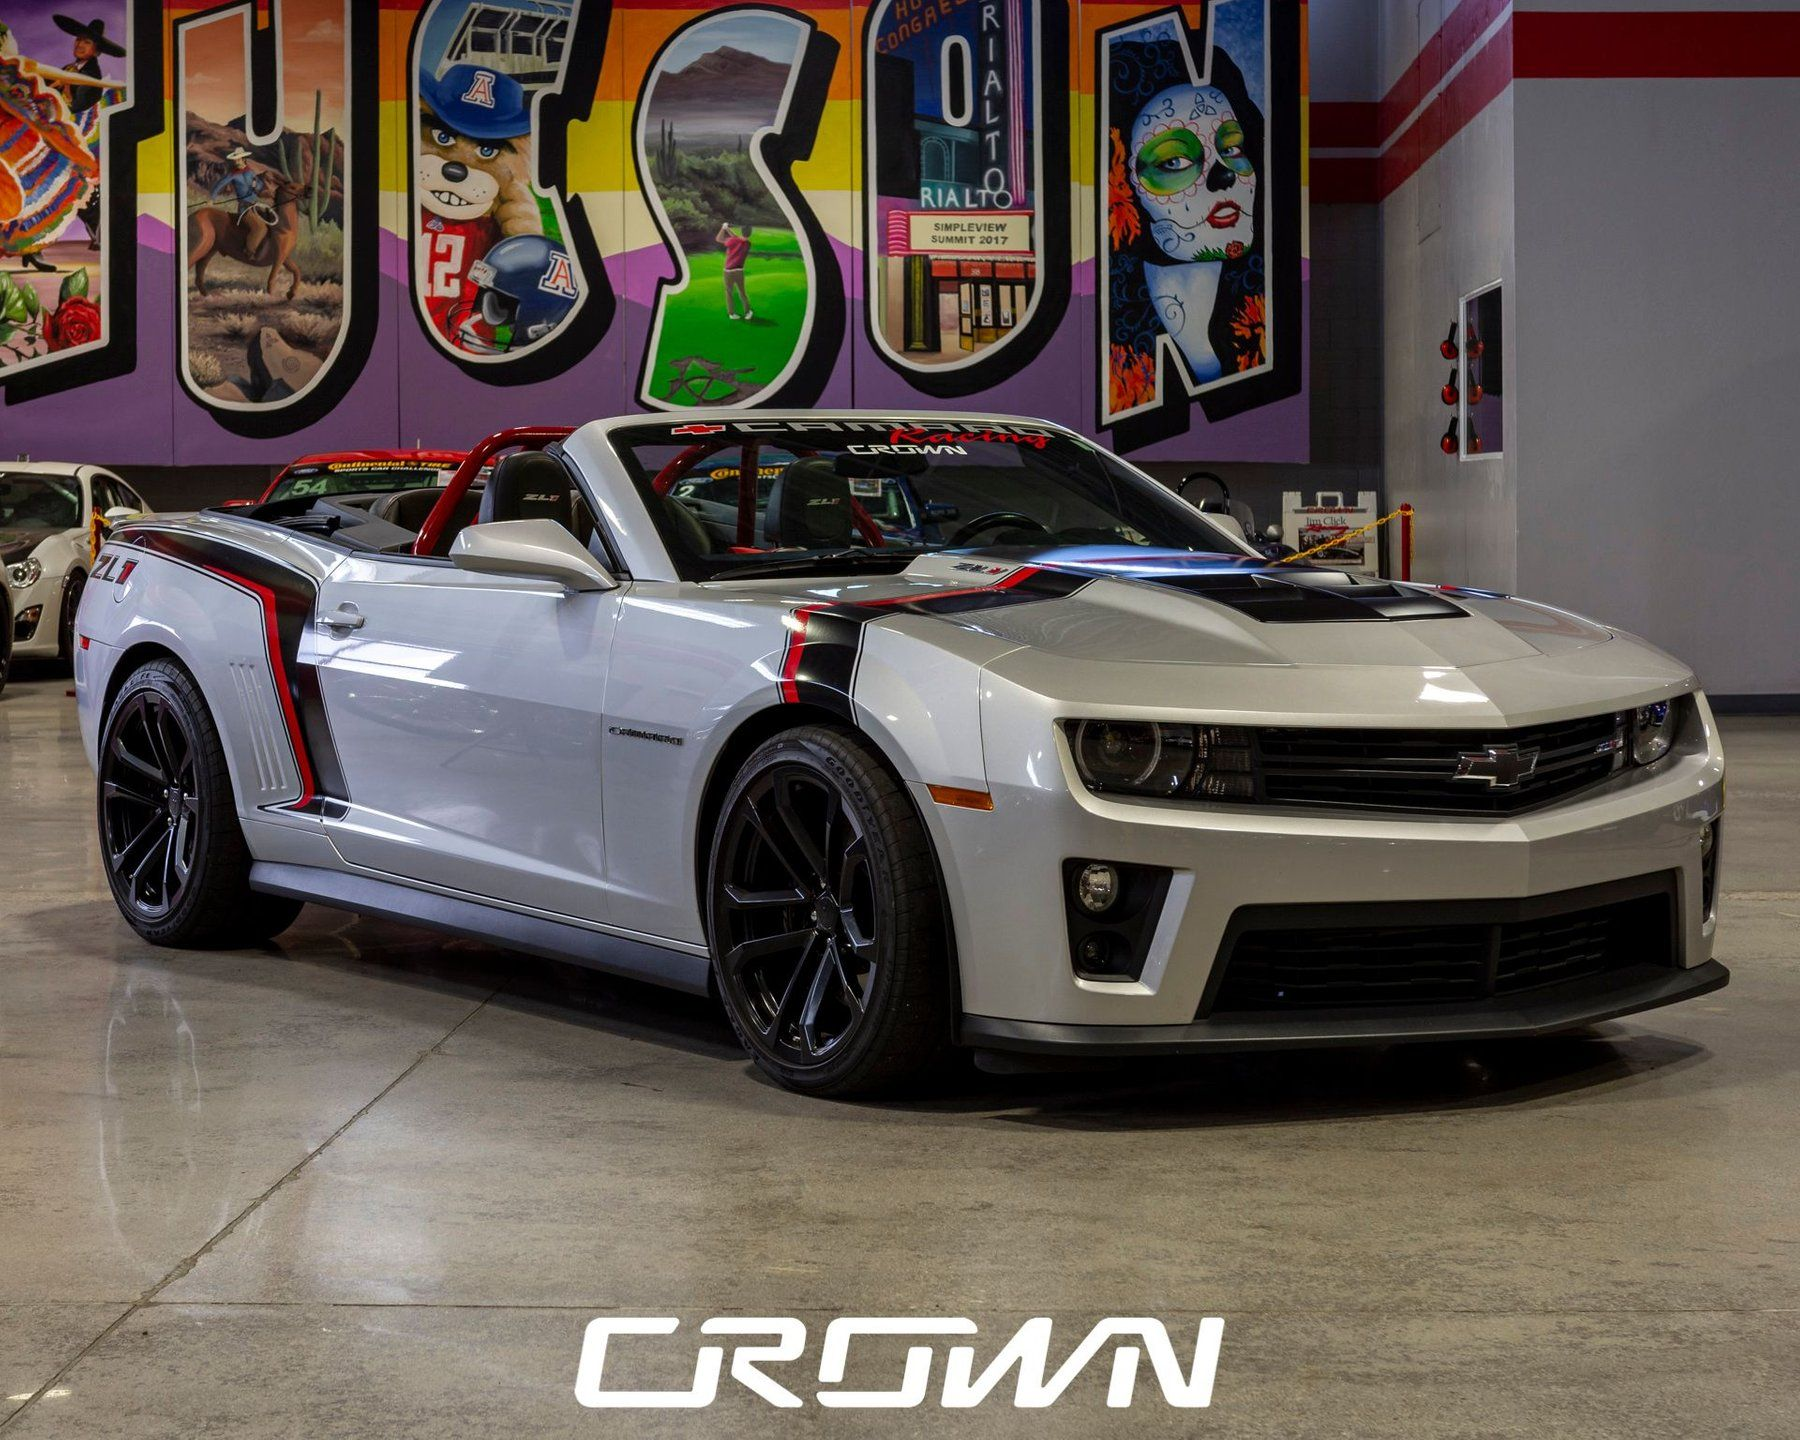 2013 Chevy Camaro Zl1 Is A Track Beast That Needed To Be Caged